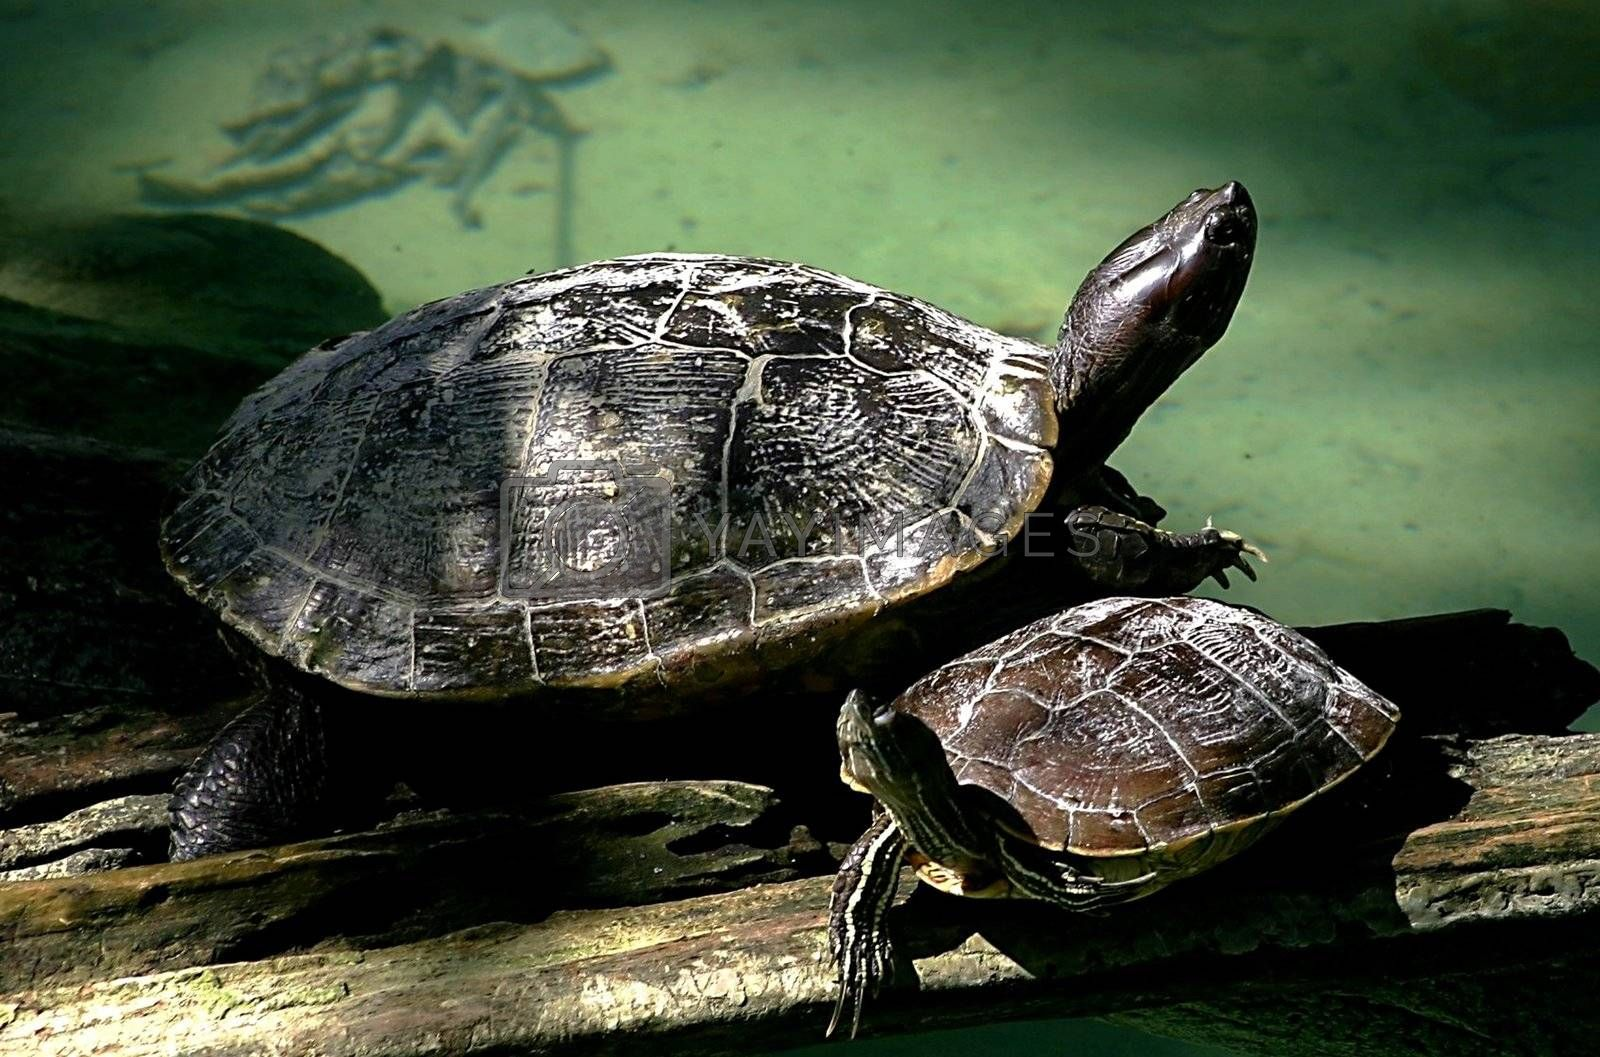 Two turtles taking in the sun on a wooden branch